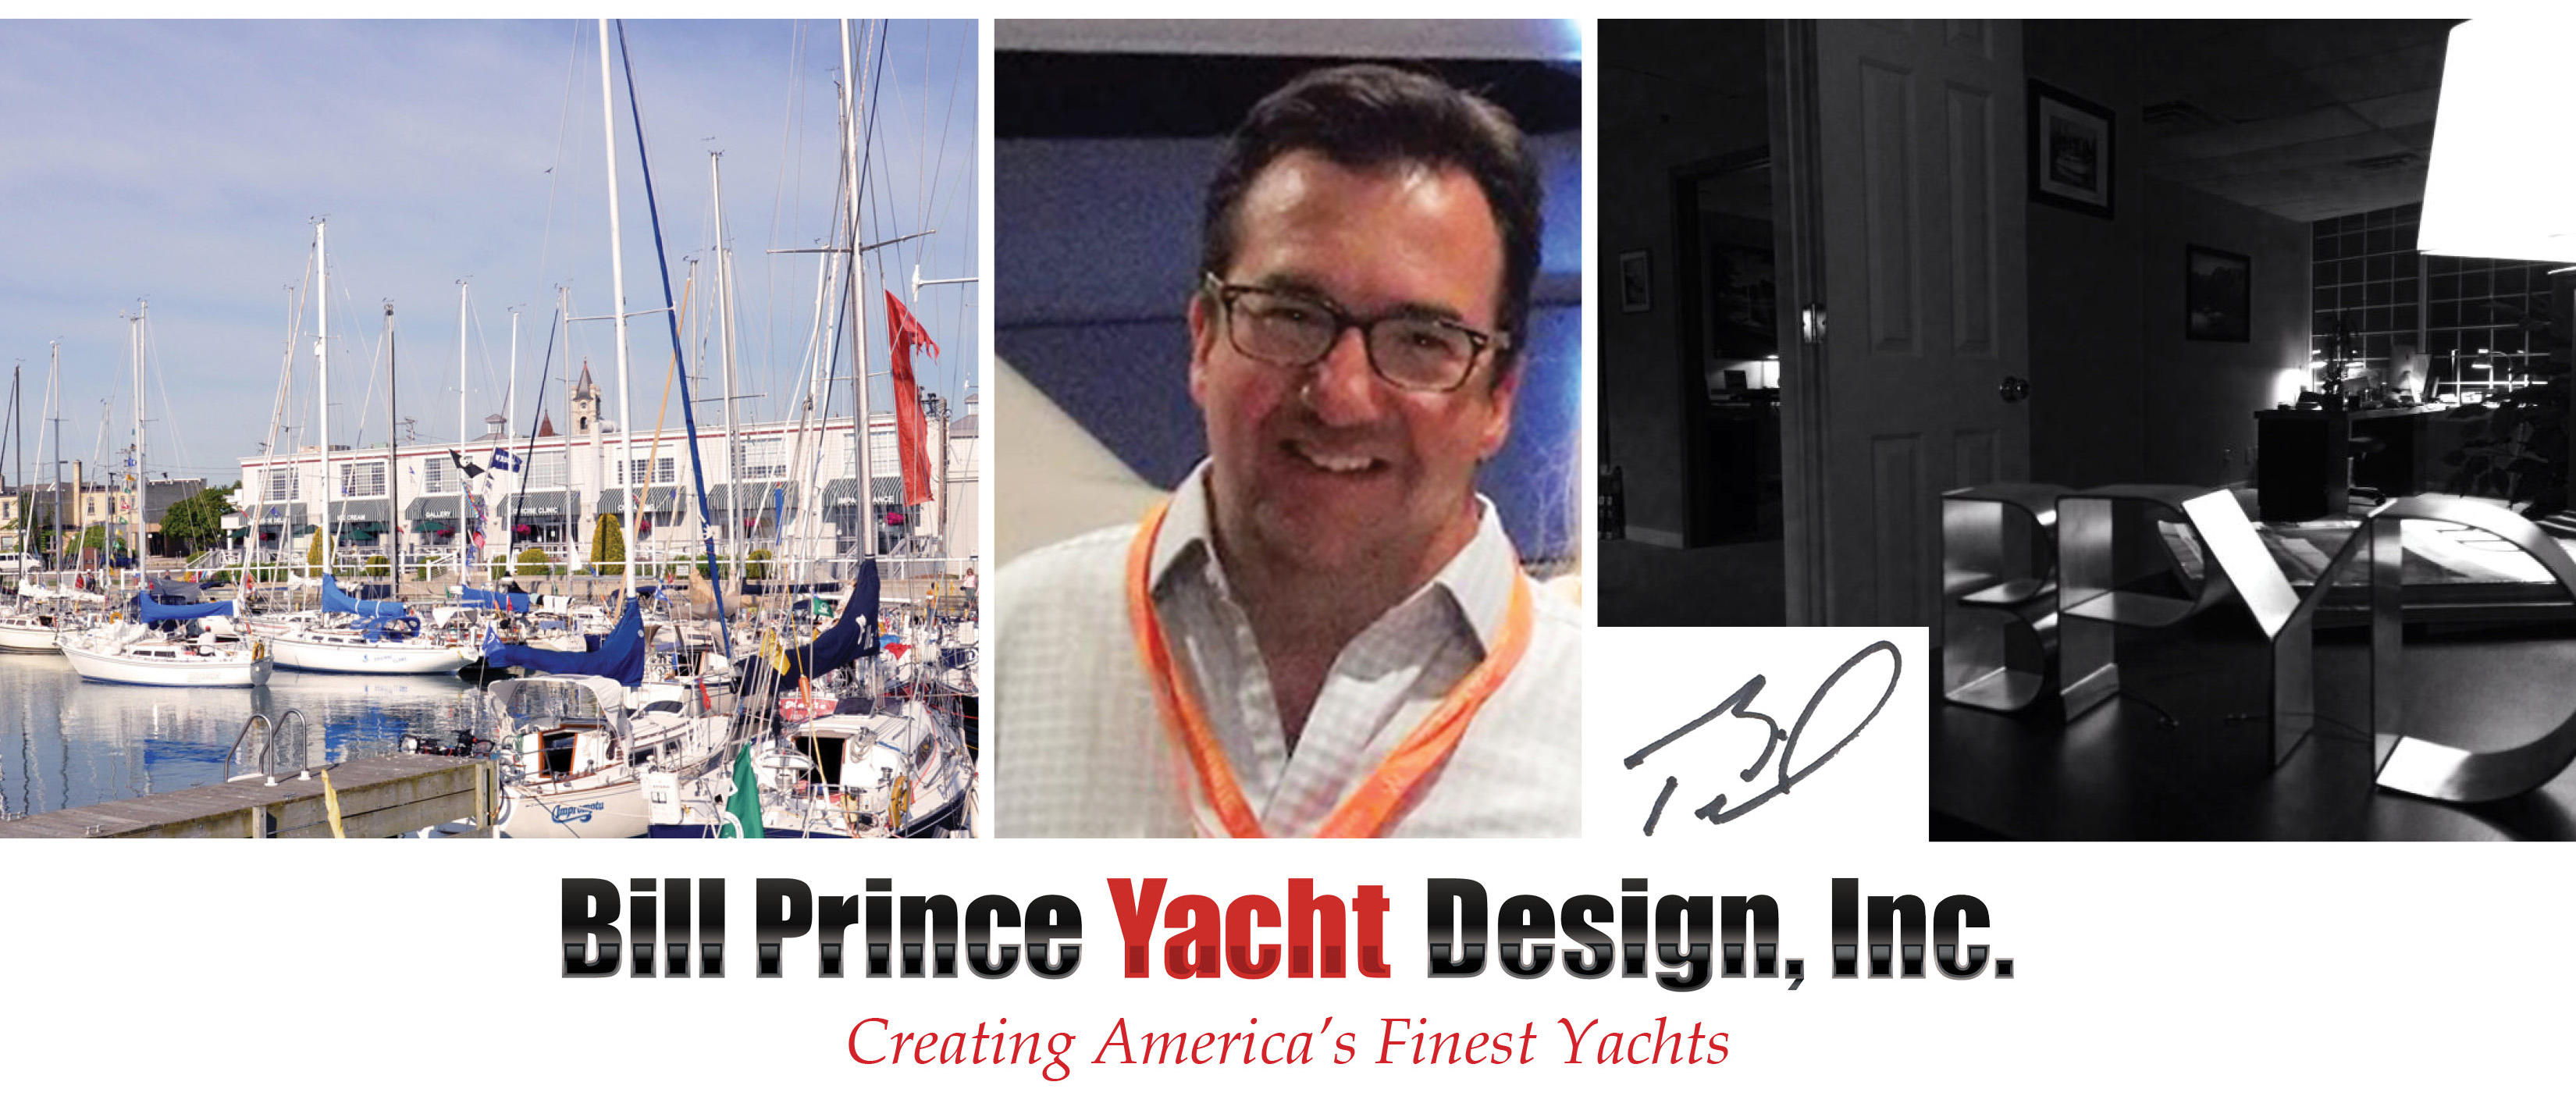 Bill Prince Yacht Design Collage